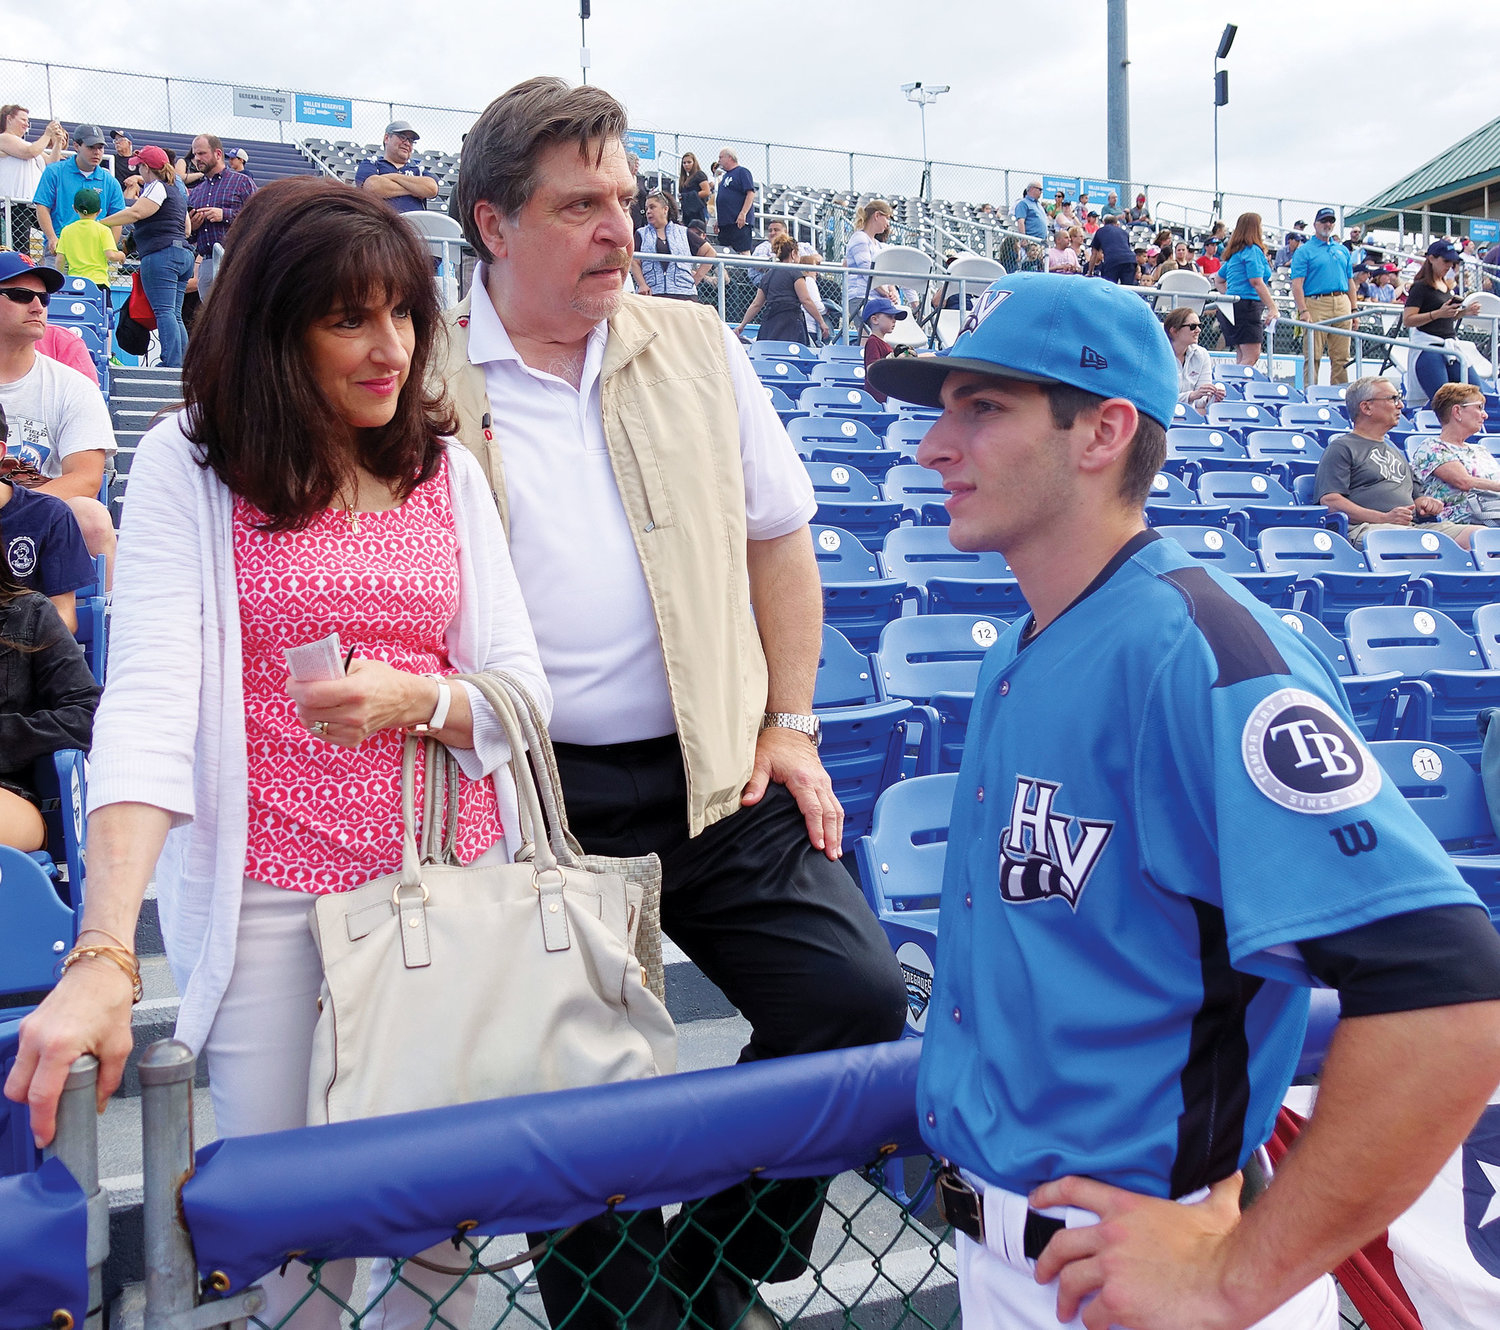 HOMECOMING—Joe LaSorsa, right, talks with his parents, Gregory and Diana LaSorsa, before his Hudson Valley Renegades met the Lowell Spinners in a New York-Penn League baseball game at Dutchess Stadium in Fishkill June 17. Joe LaSorsa was born and raised in Westchester County.